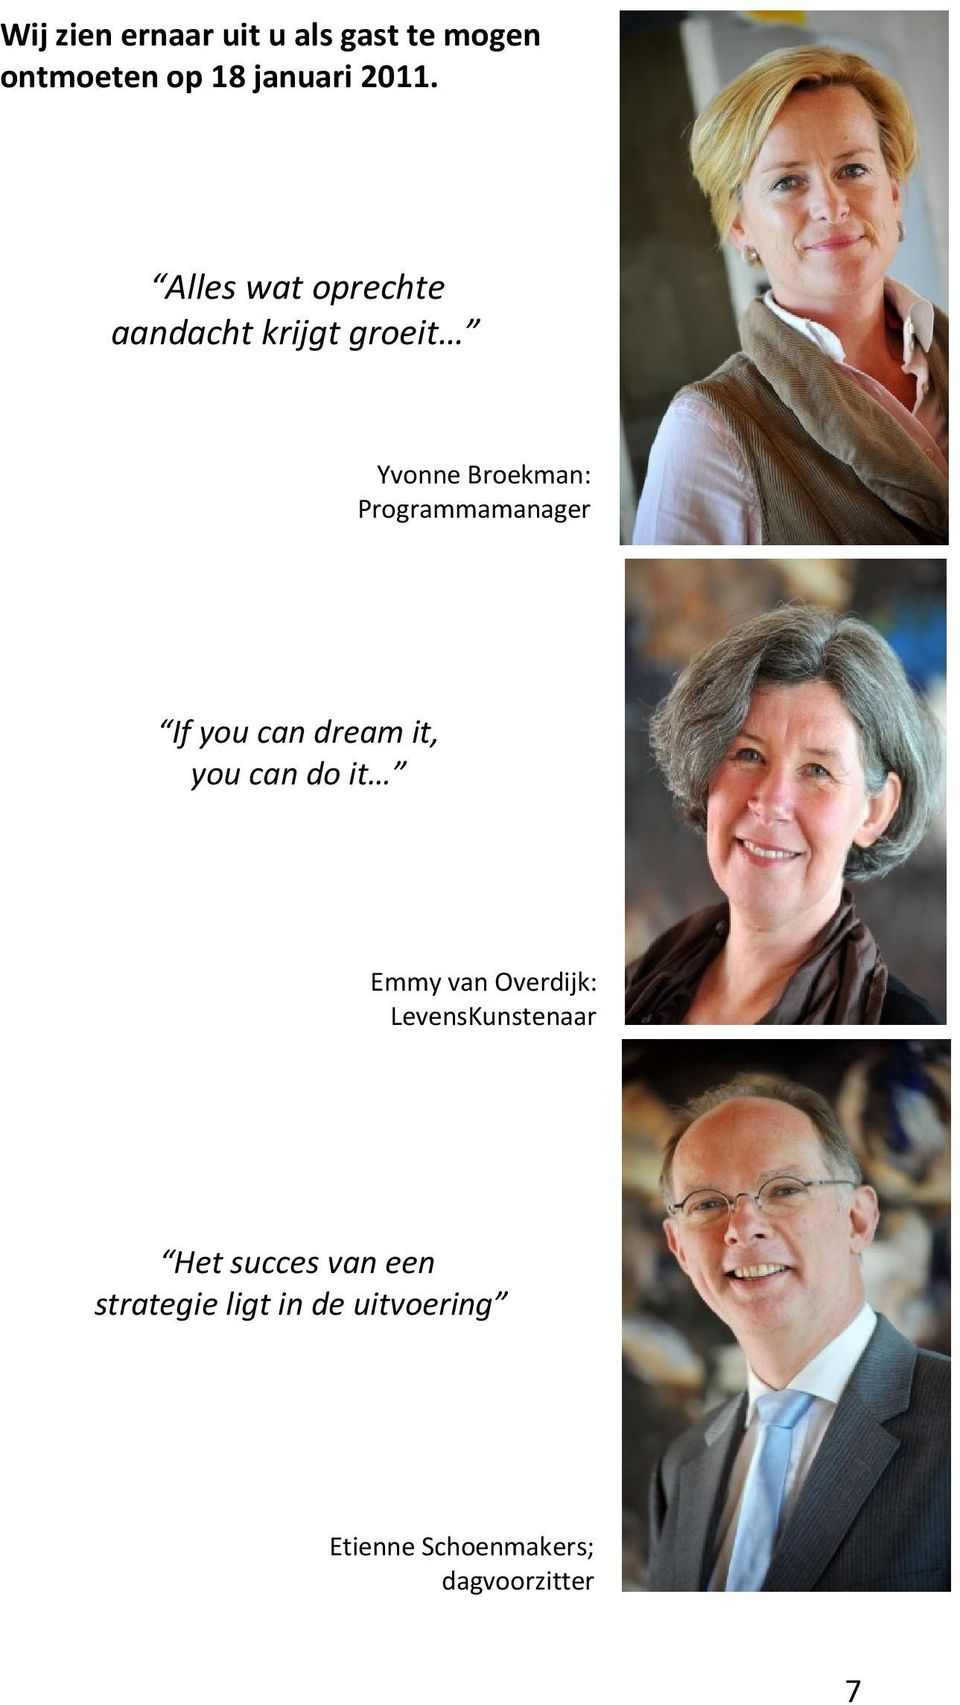 If you can dream it, you can do it Emmy van Overdijk: LevensKunstenaar Het